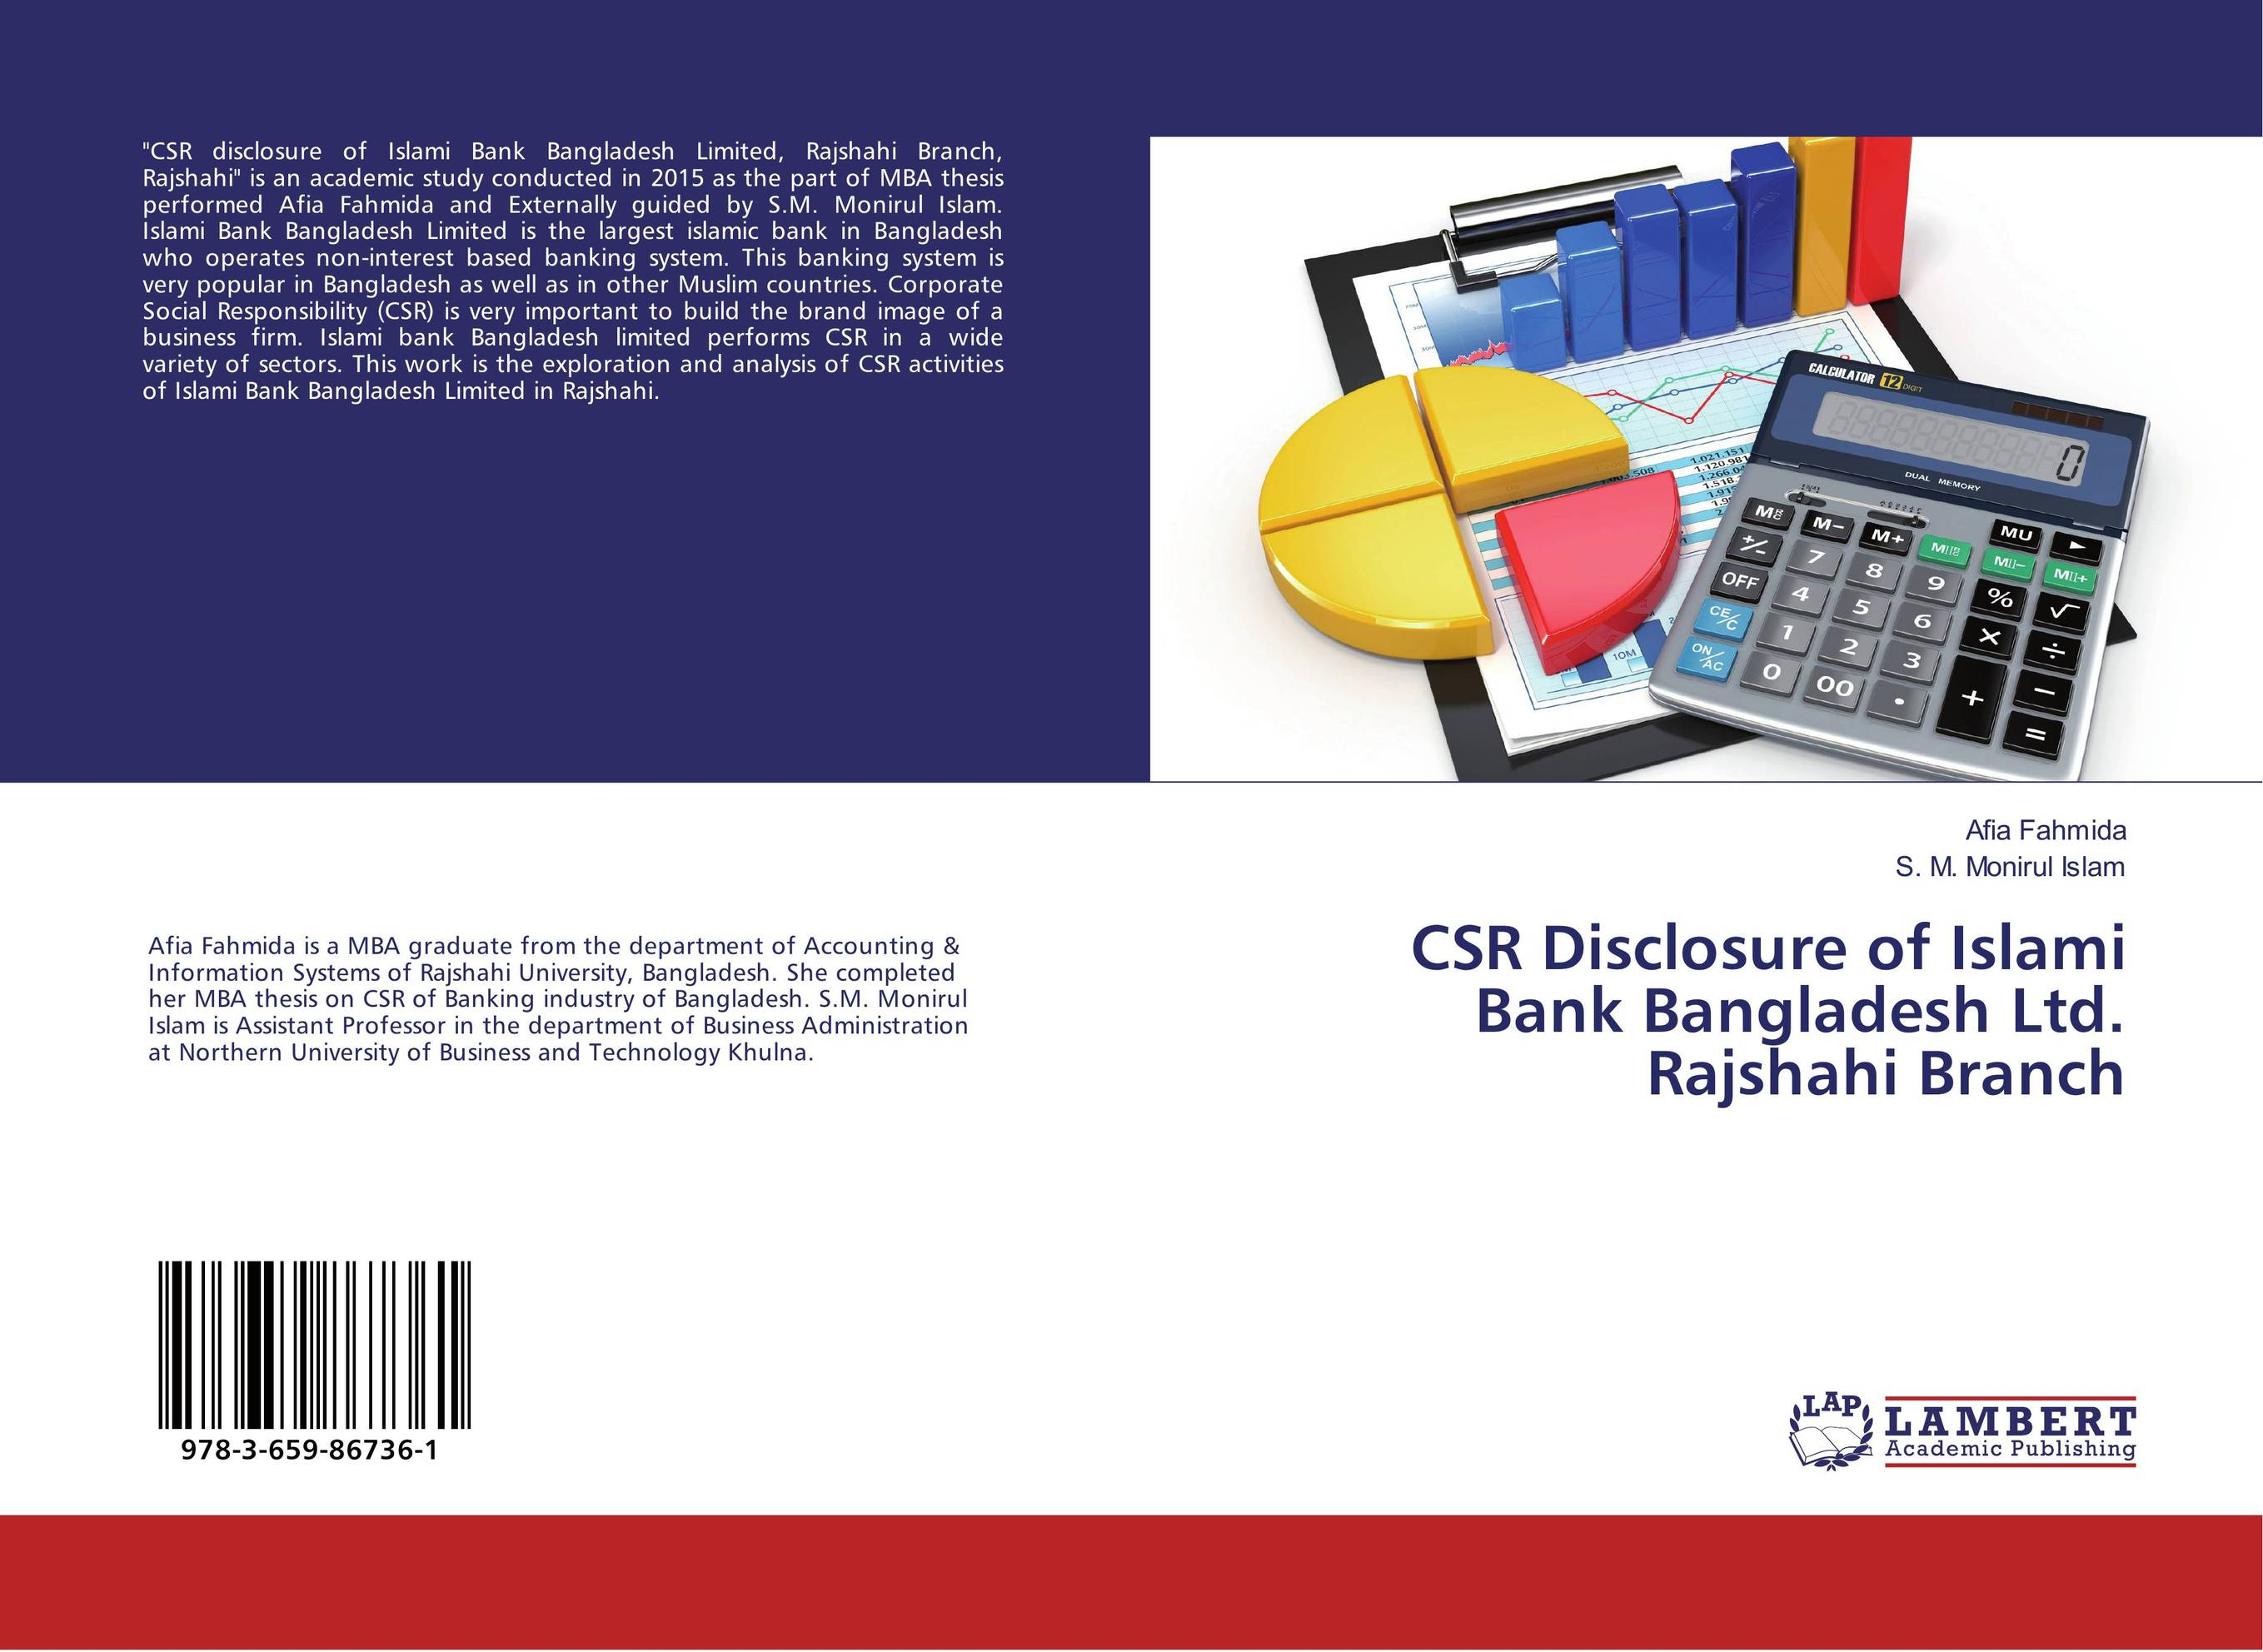 CSR Disclosure of Islami Bank Bangladesh Ltd. Rajshahi Branch